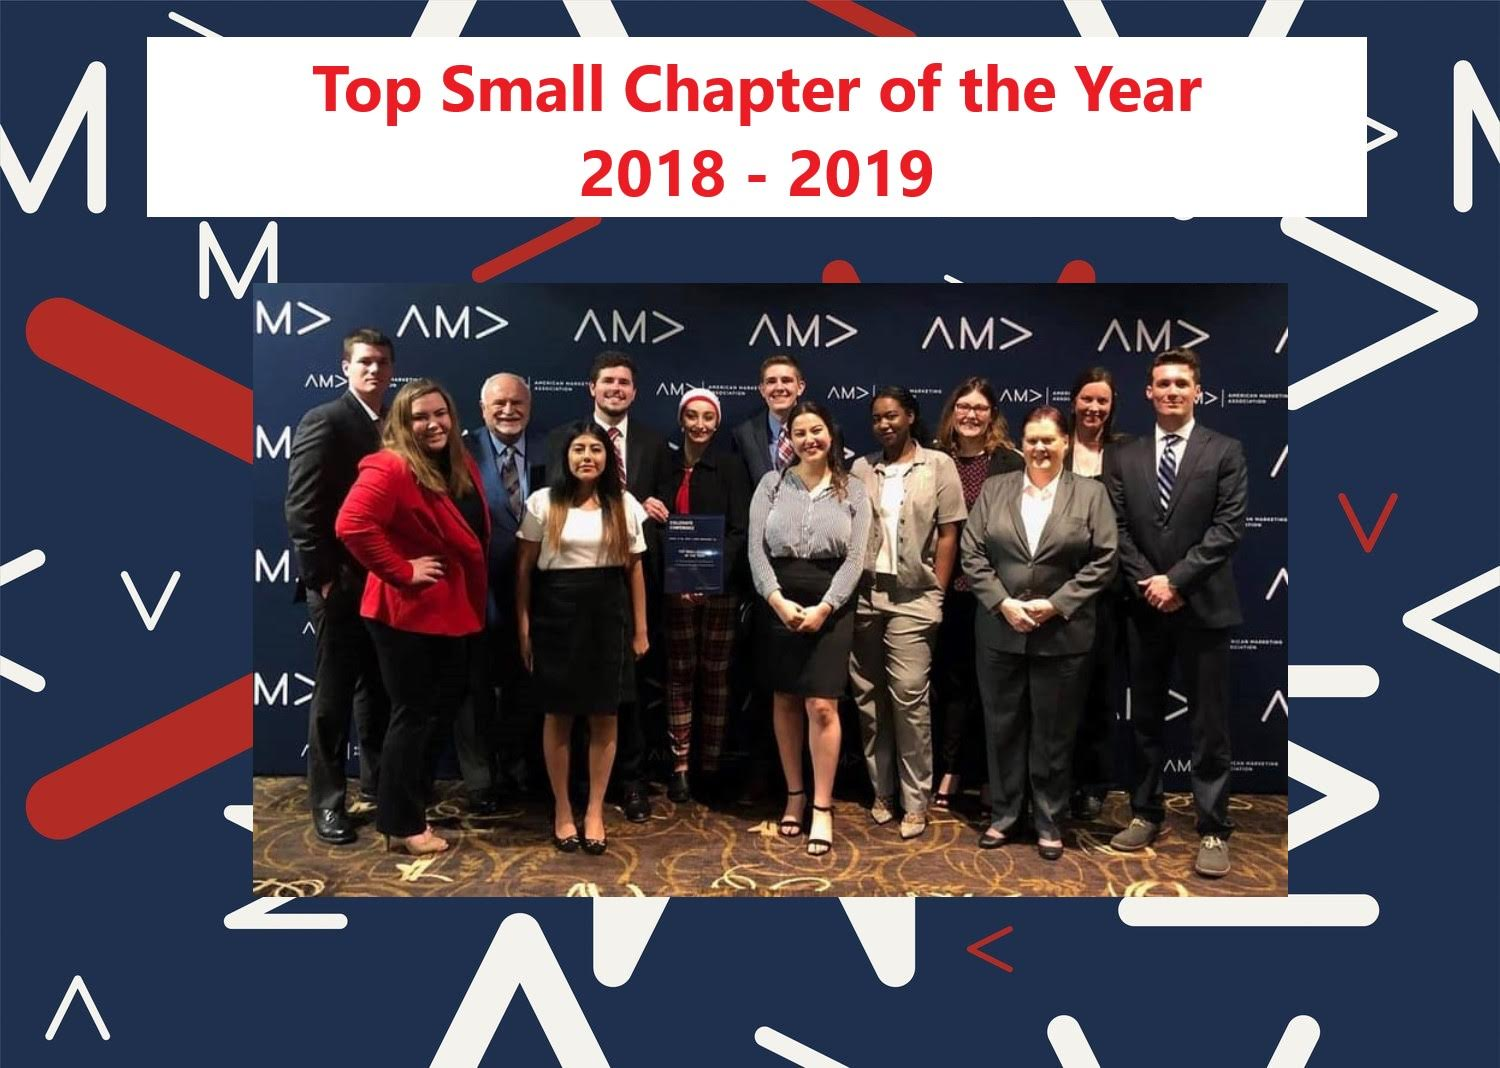 Top Small Chapter of the Year